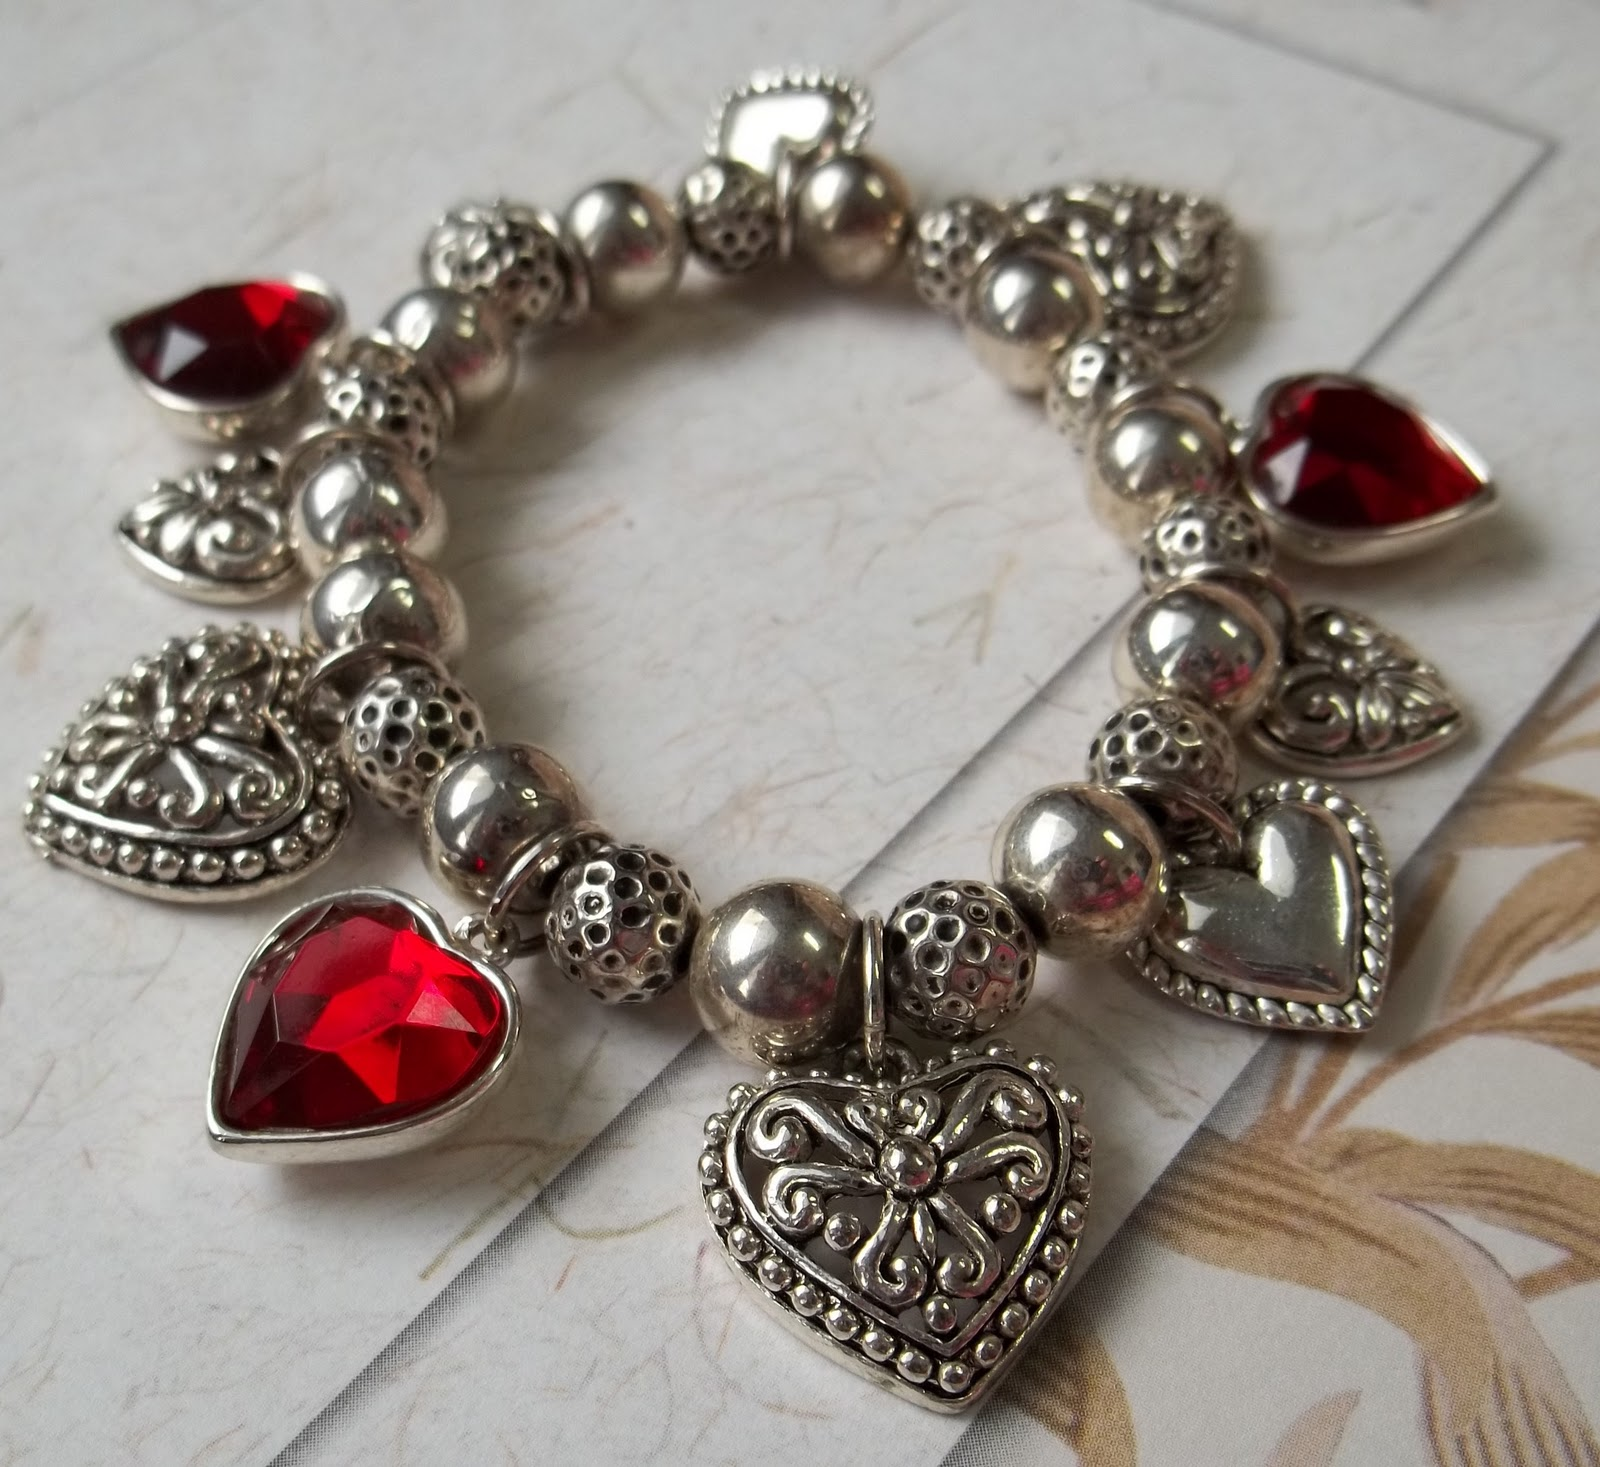 new heart giftique bracelet s for wit valentine eng day pandora gifts promo whats end jewelry from valentines the